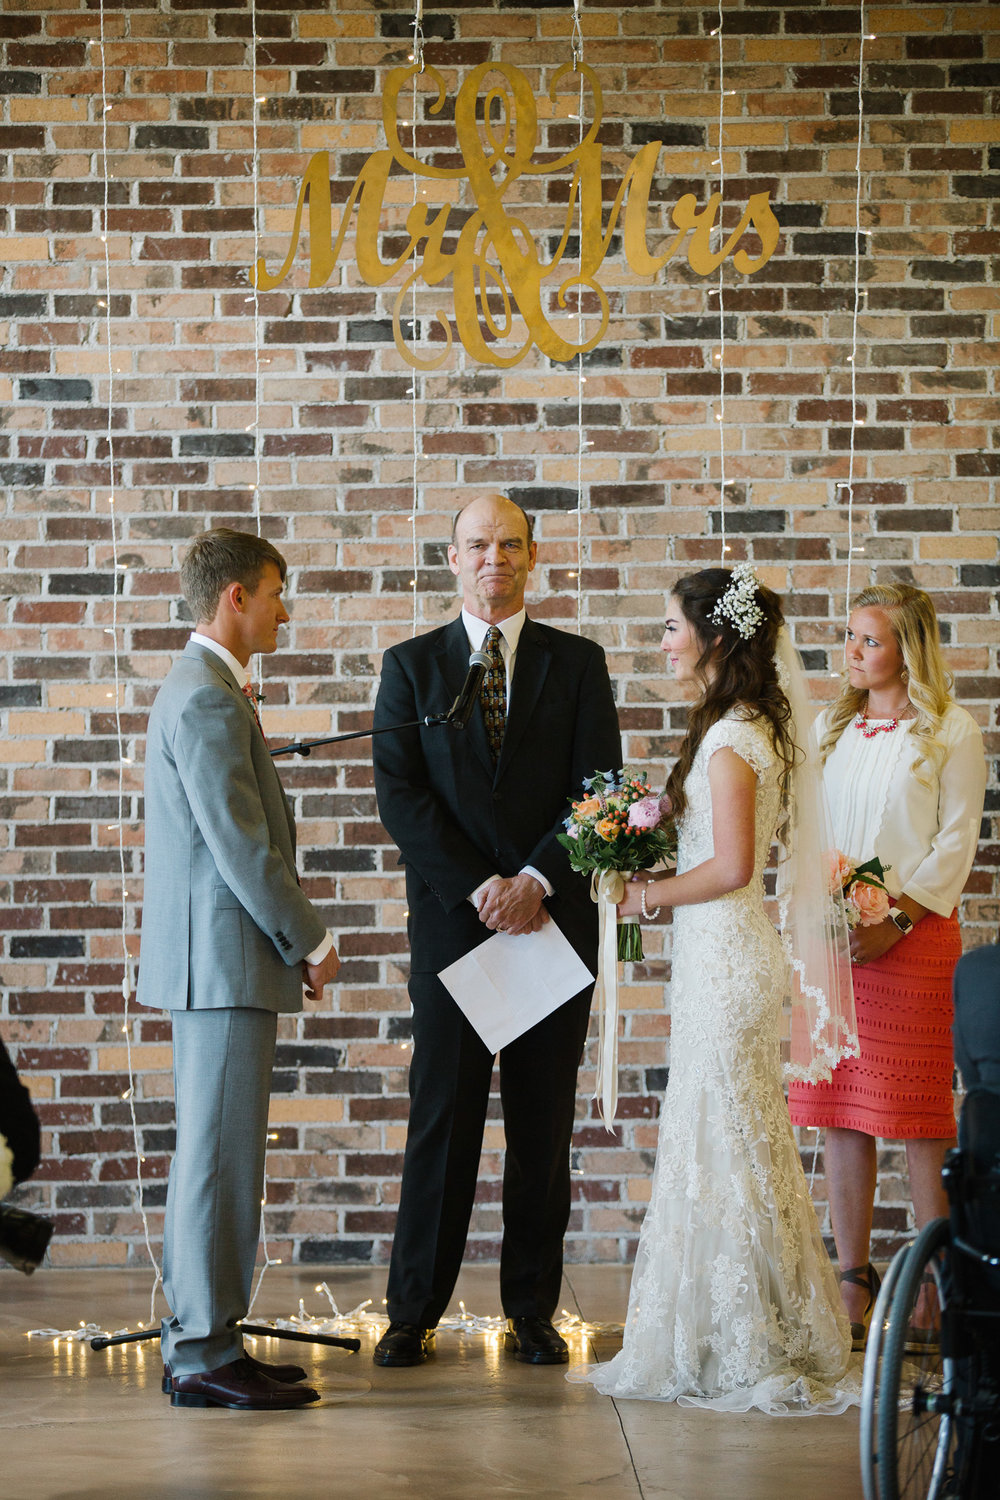 CarriGeorgeWedding_JTP2017_013.jpg